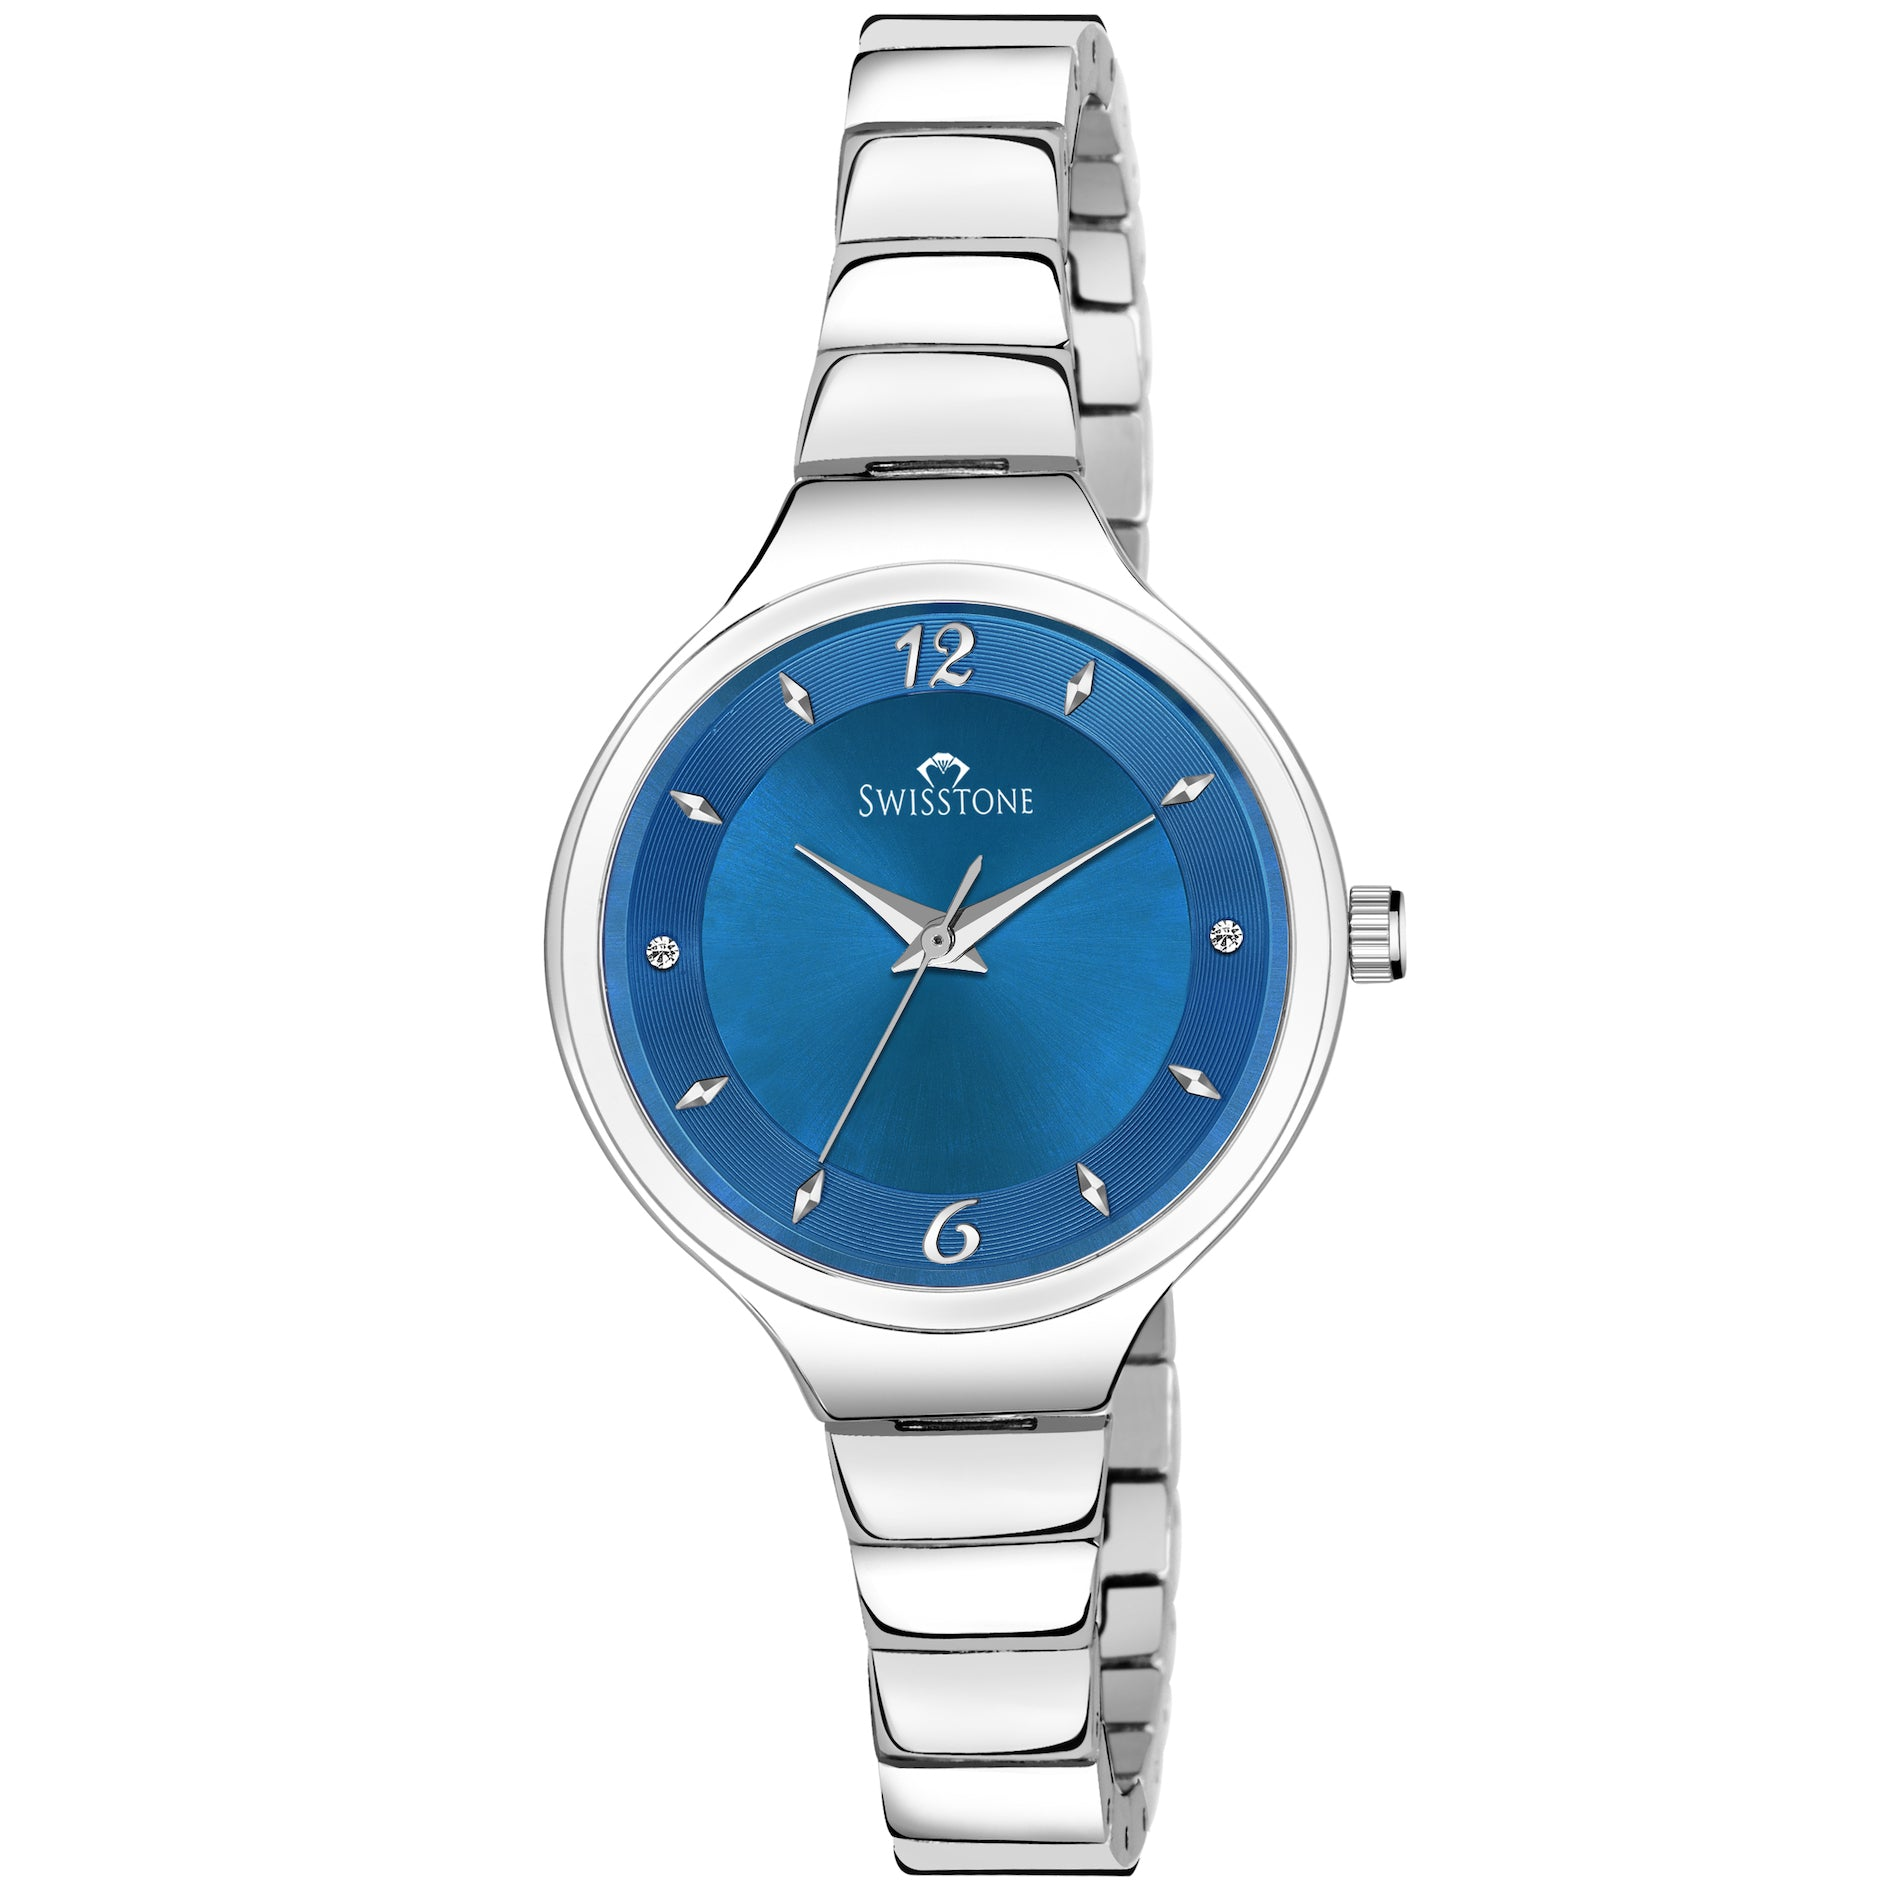 Swisstone SW-L029-BLU Wrist Watch for Women